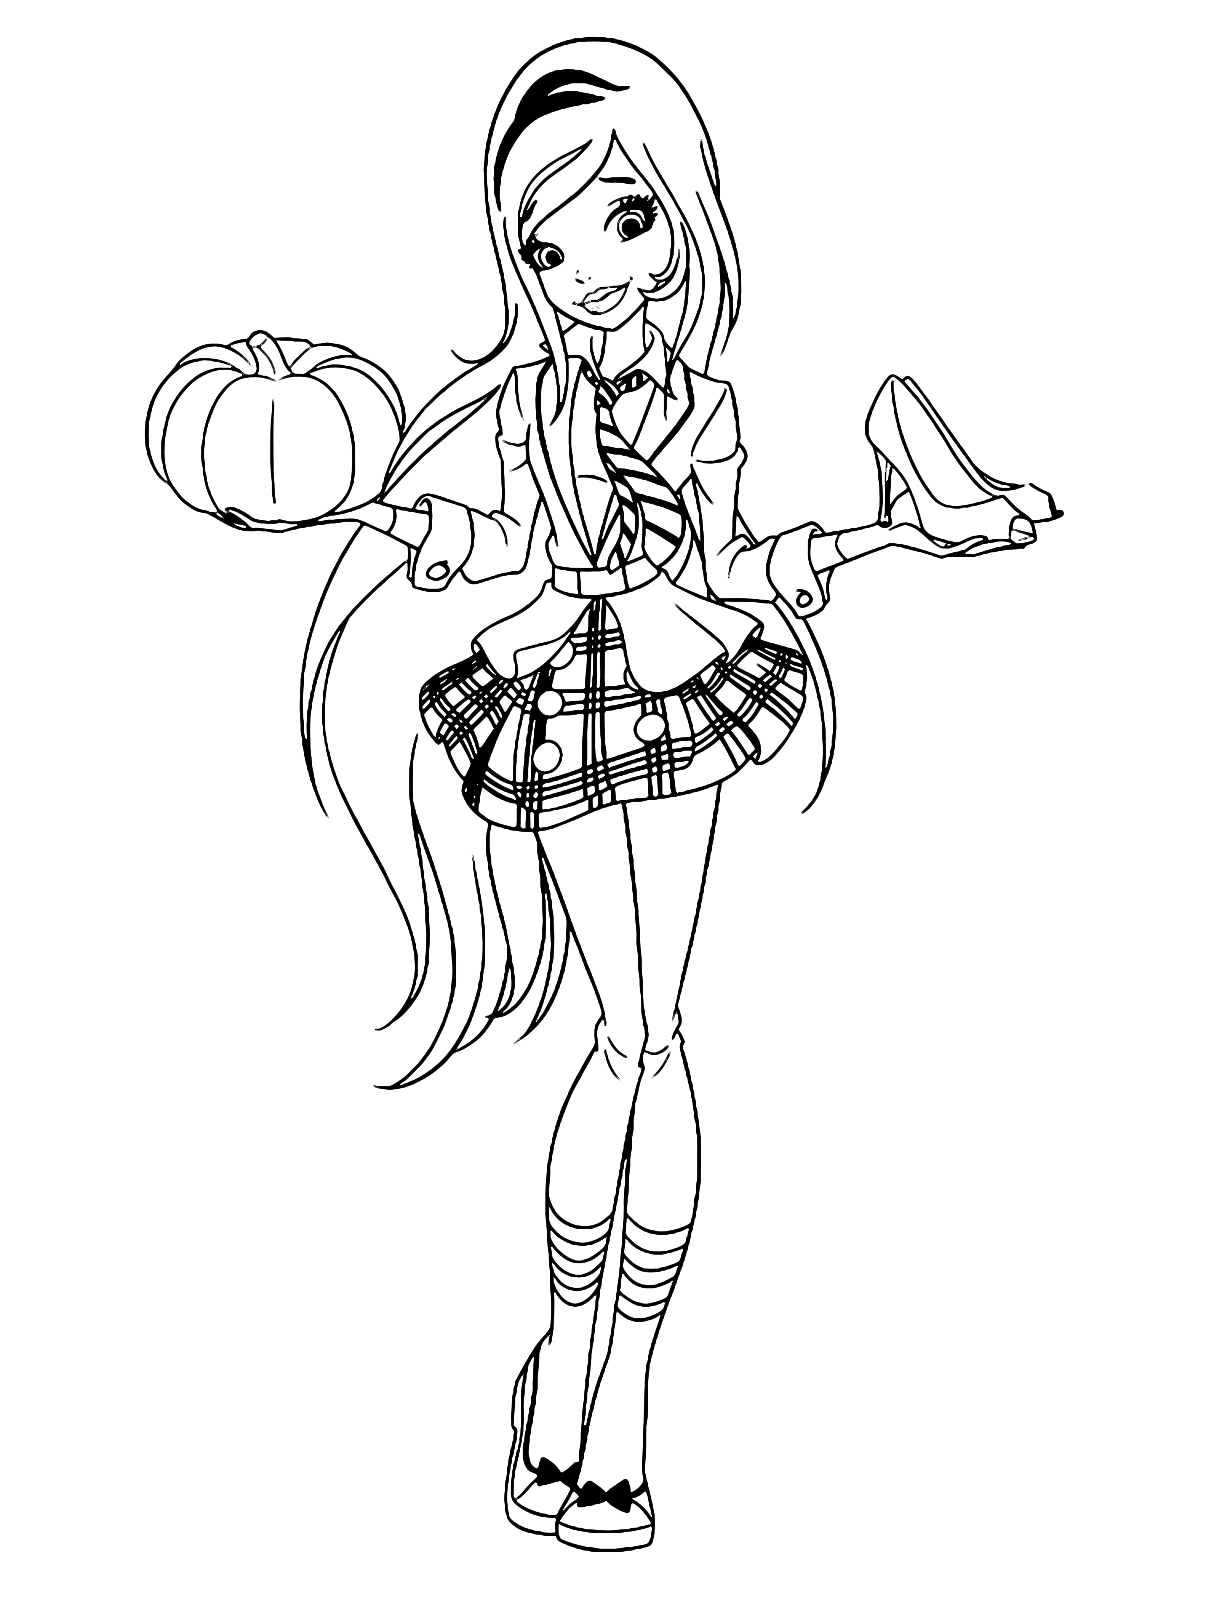 Regal academy rose con in una mano una zucca e nell for Disegni da colorare regal academy